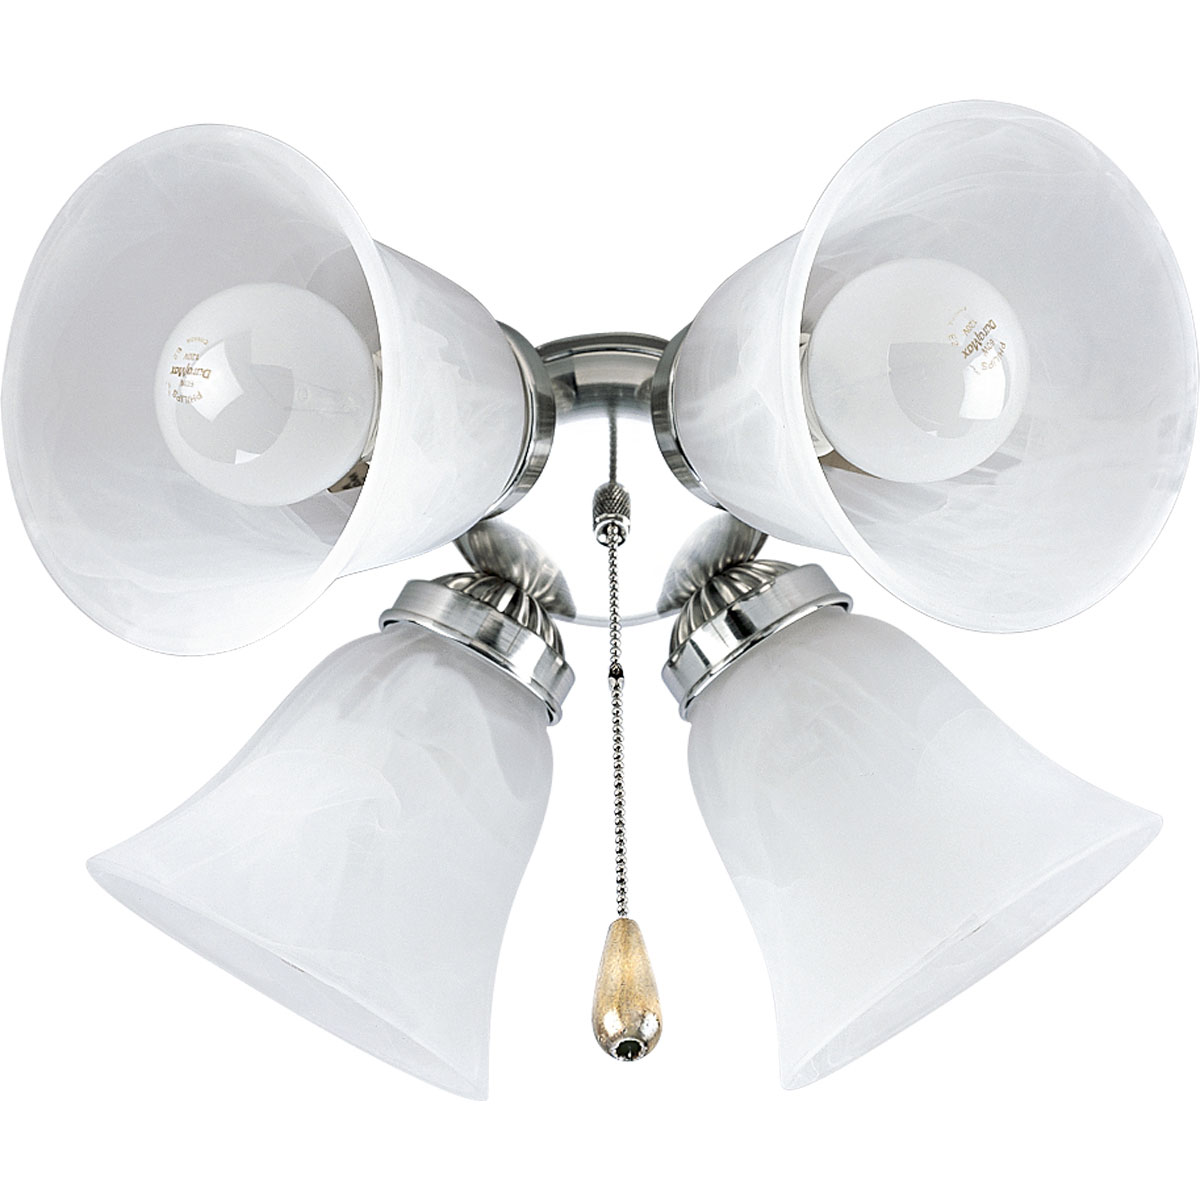 P261009 P2610 09 Progress Brand Four Light Kit With White Washed Alabaster Style Glass Shades Beautiful In Design Brushed Nickel Finish Corresponds A